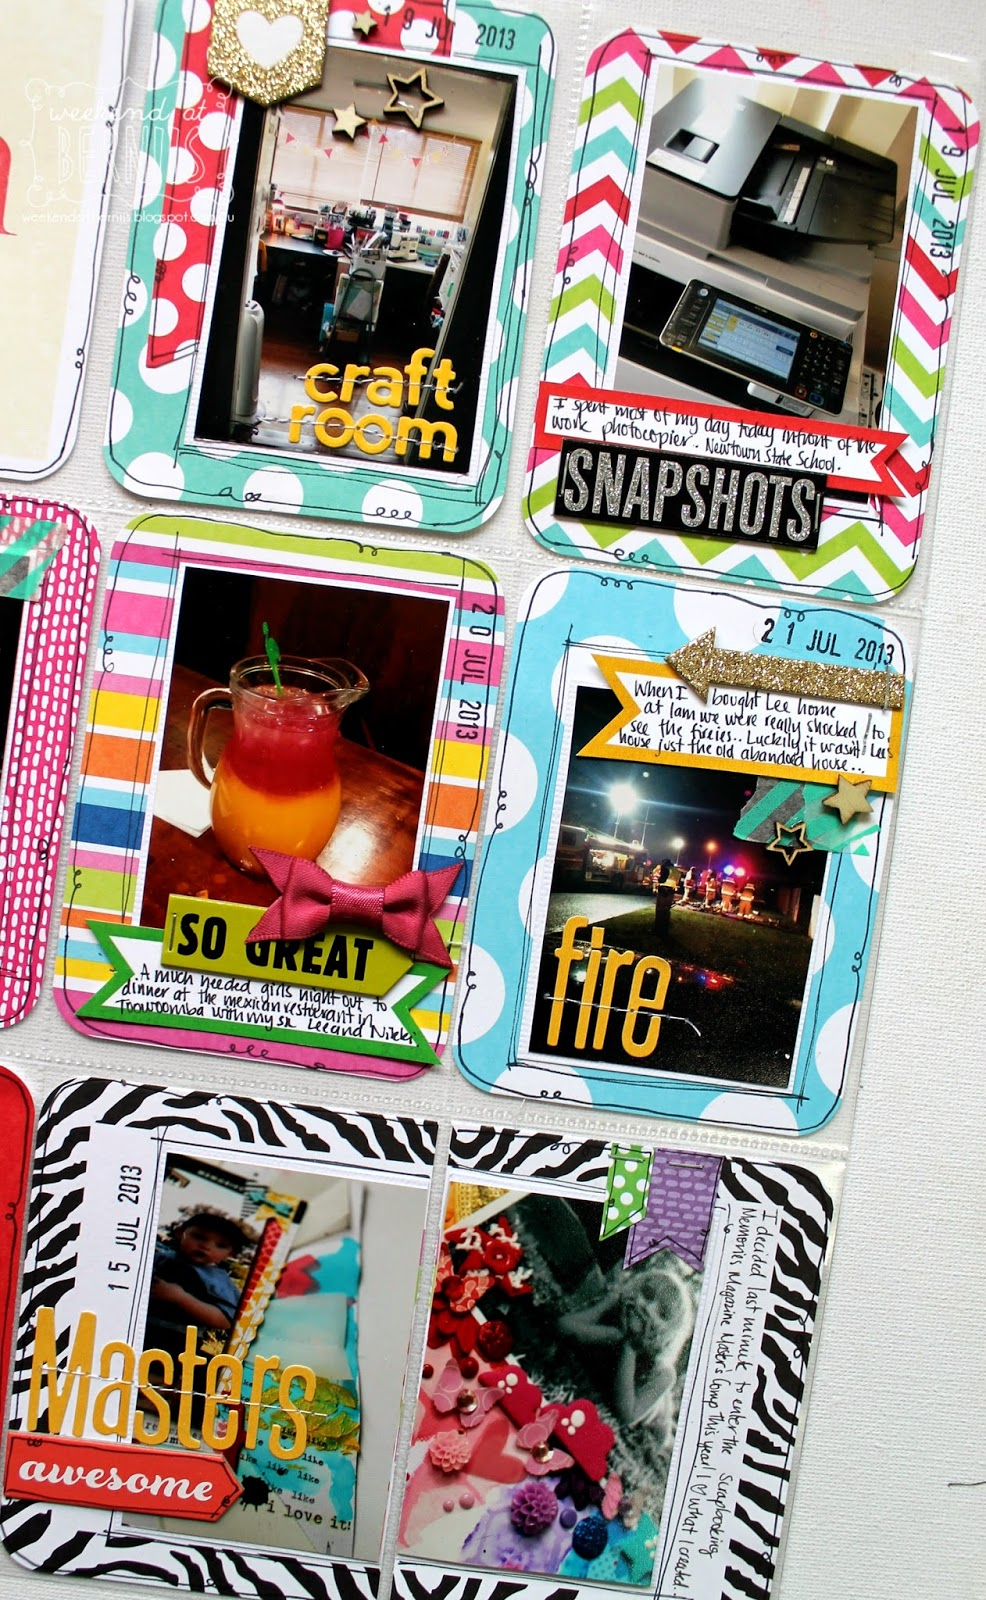 Project life by Bernii Miller usin MAMBI pocket pages and MAMBI chips.